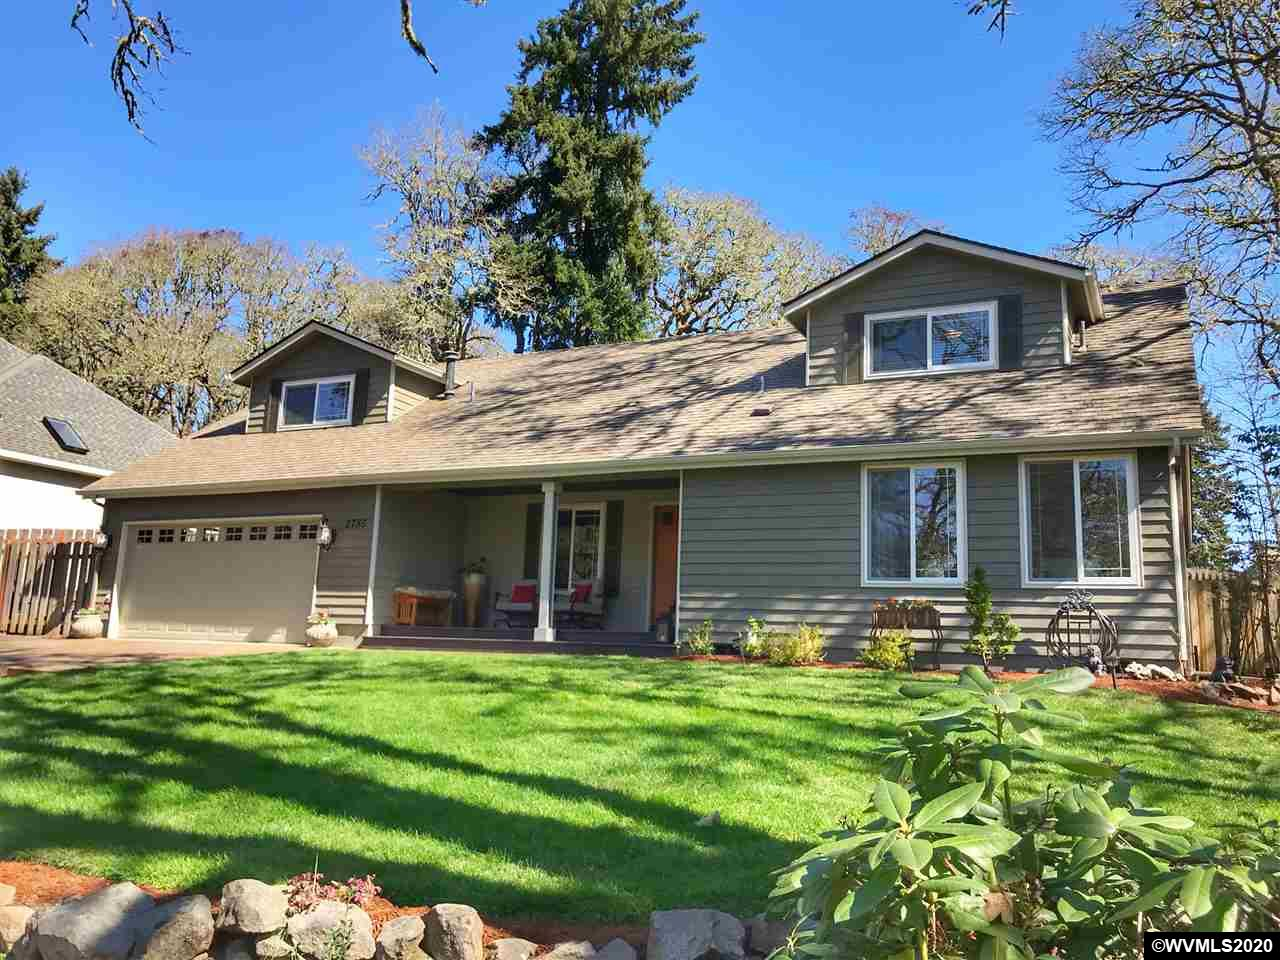 Incredible home in desired established SW Corvallis CC neighborhood awaits you! This is a must visit. Space for all with an easy flow flrpln! 5 bdrms/4 baths and ample storage. You will appreciate the beauty throughout incl. granite counters, stainless steel appliances, tasteful master suite and more. Come and fall in love with the large sun room. There is a fmly room, liv rm and another bonus room upstairs as well as a sunroom, mud/laundry room, sauna, and a gorgeous fenced landscaped yard with patio.